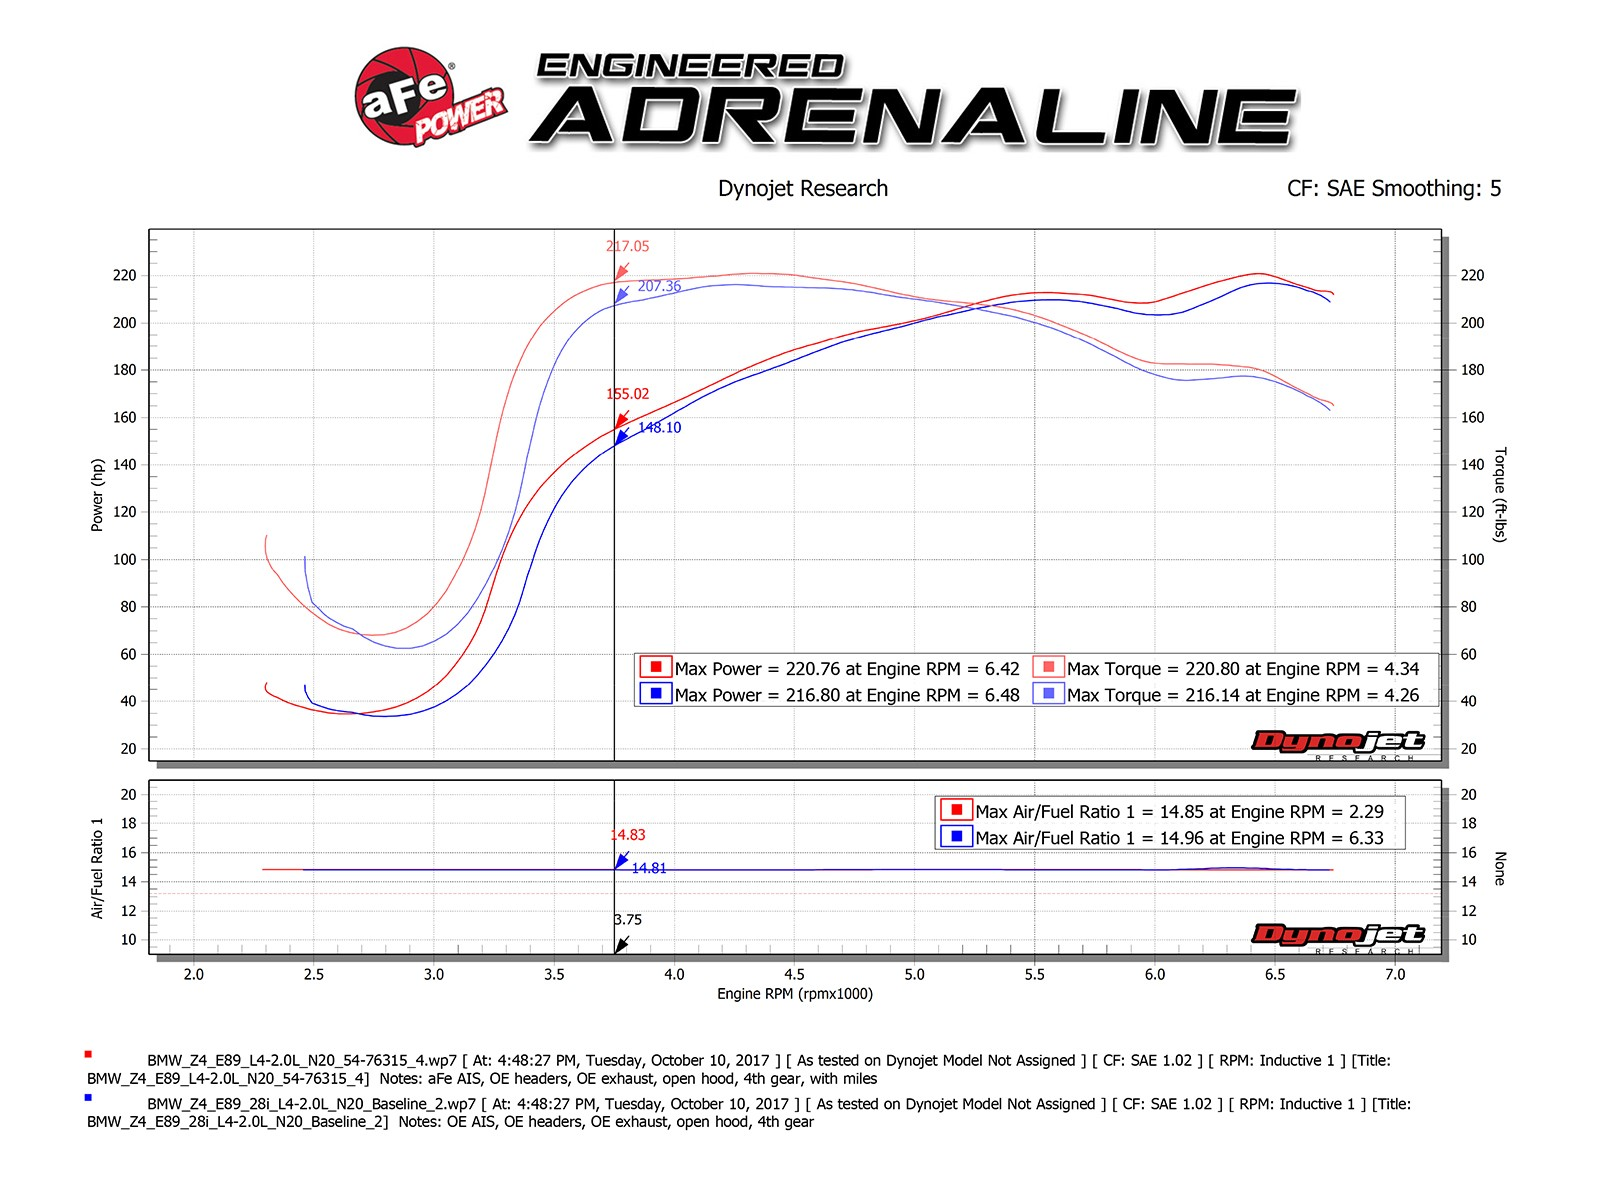 Momentum Gt Pro 5r Cold Air Intake System Afe Power 81 Corvette Torque Converter Wiring Diagram Adds Up To 102 Flow Increase 7 Hp Horsepower 10 Lbs X Ft Max Gains